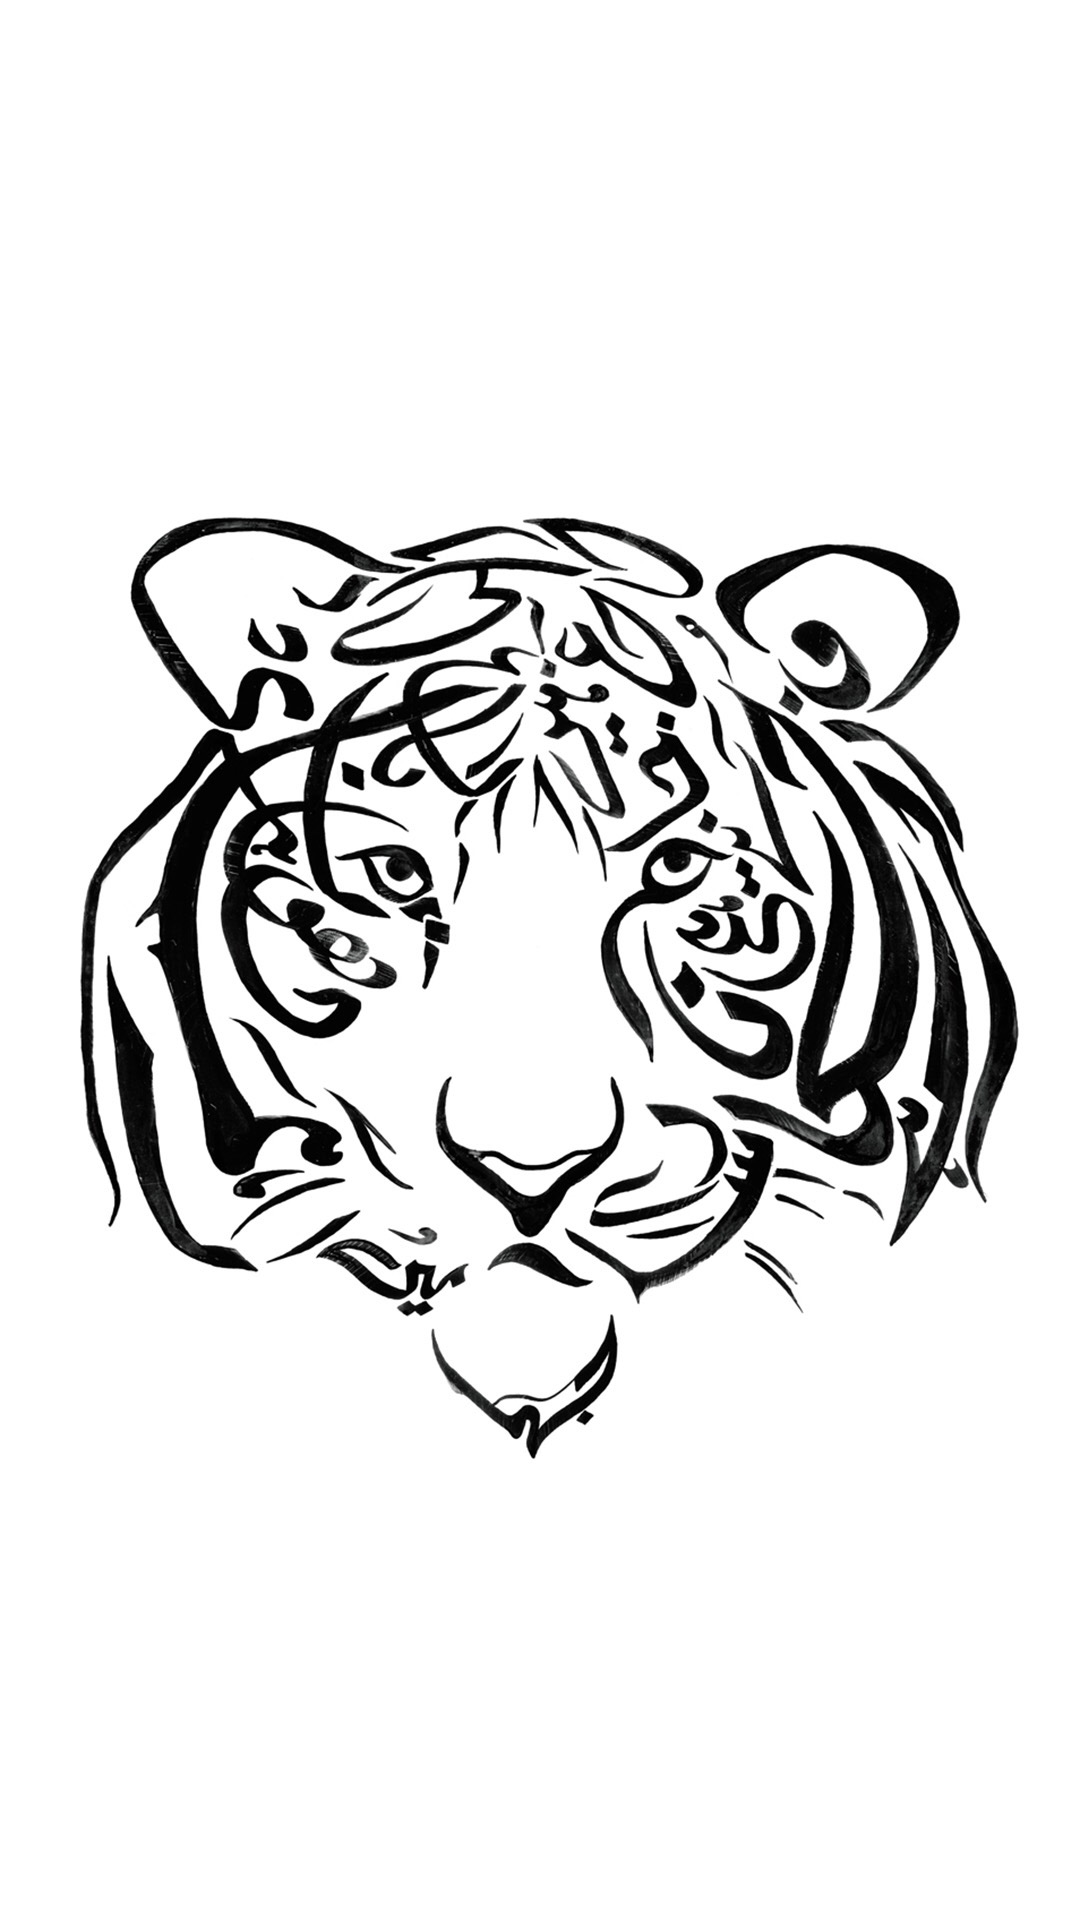 1080x1920 Use Arabic Calligraphy To Drow A Tiger Which Is One